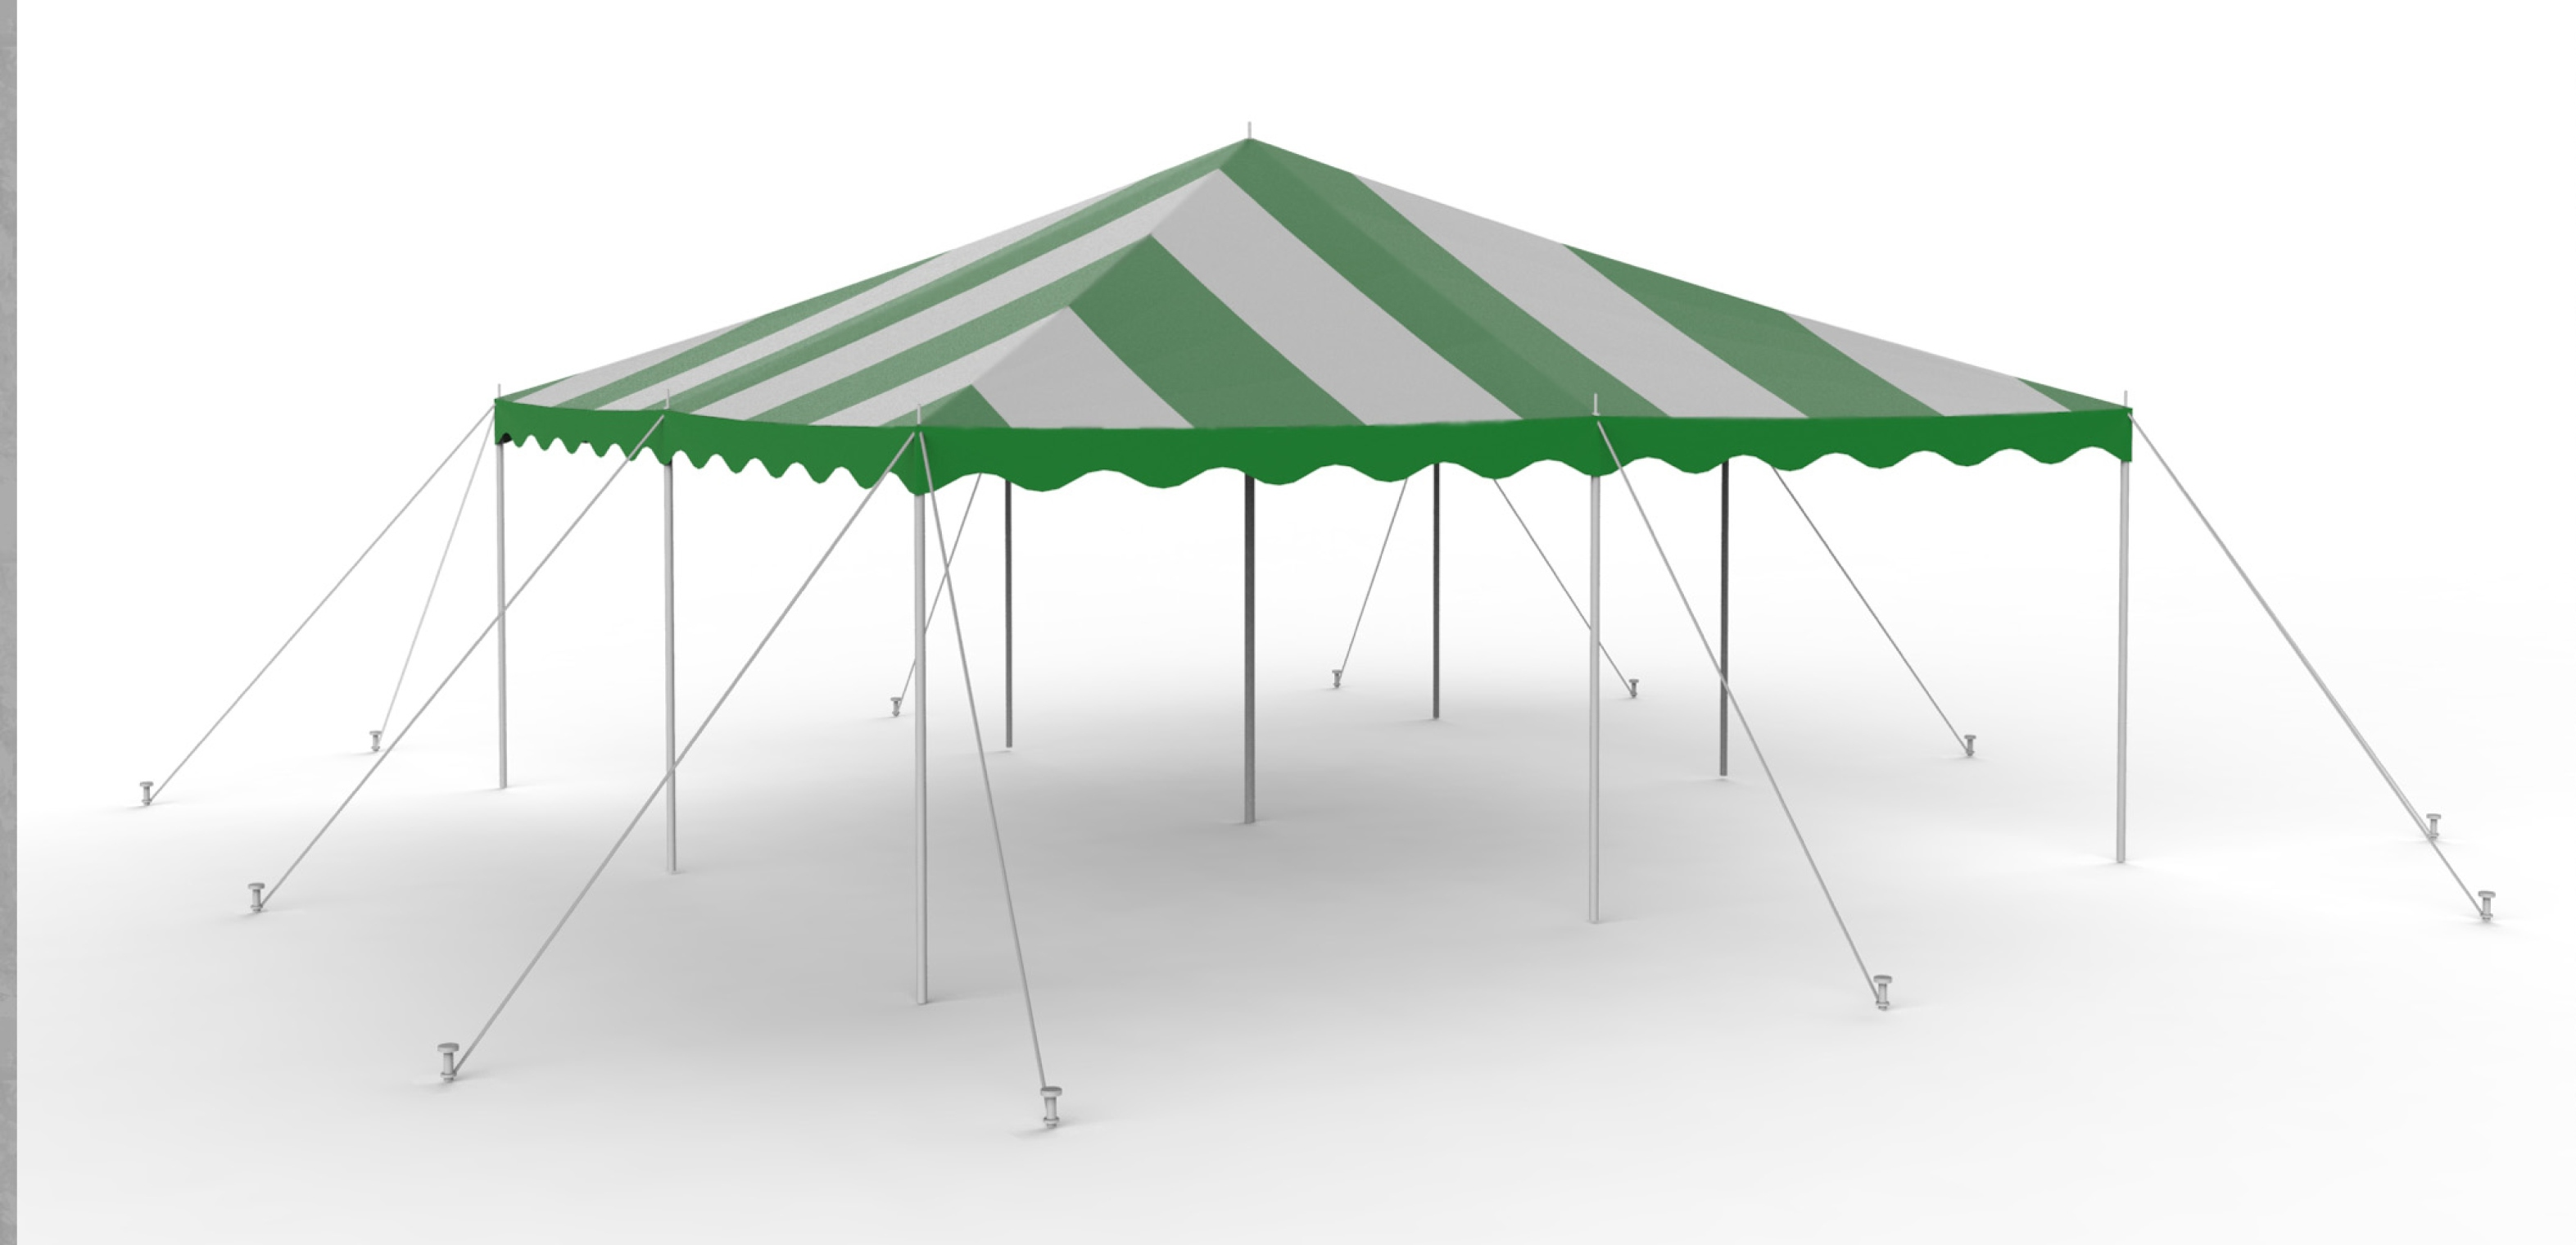 10x10 Freestanding Canopy 10x20 16x16 Green White Staked